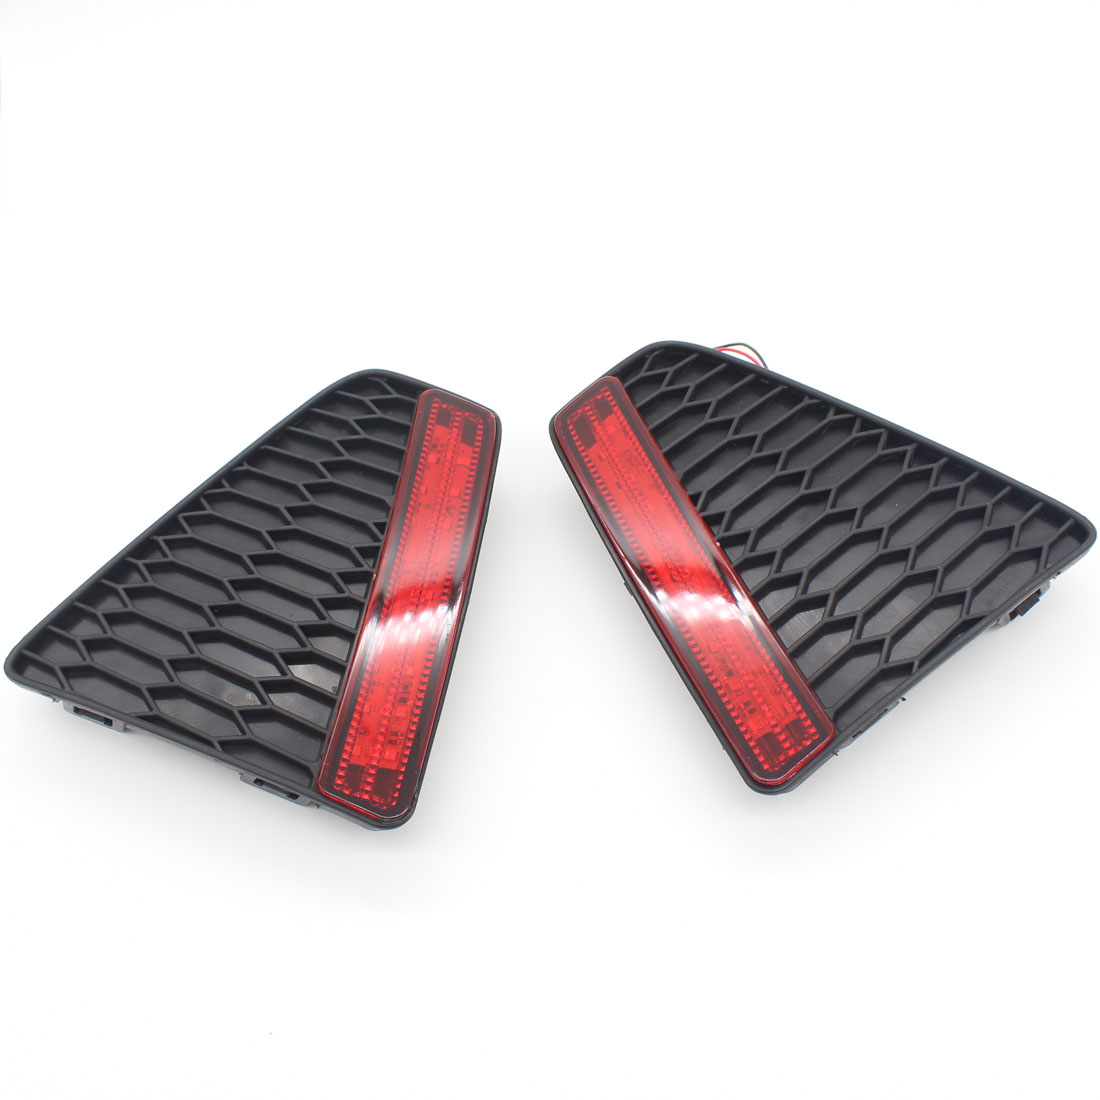 Dongzhen Backup Tail Rear Bumper Lamp LED Reflector stop Brake light fog lamp Fit For Honda Fit 2014-2015 car styling cyan soil bay car led rear bumper reflector red parking warning stop brake light tail fog lamp for honda accord 9th 2014 2016